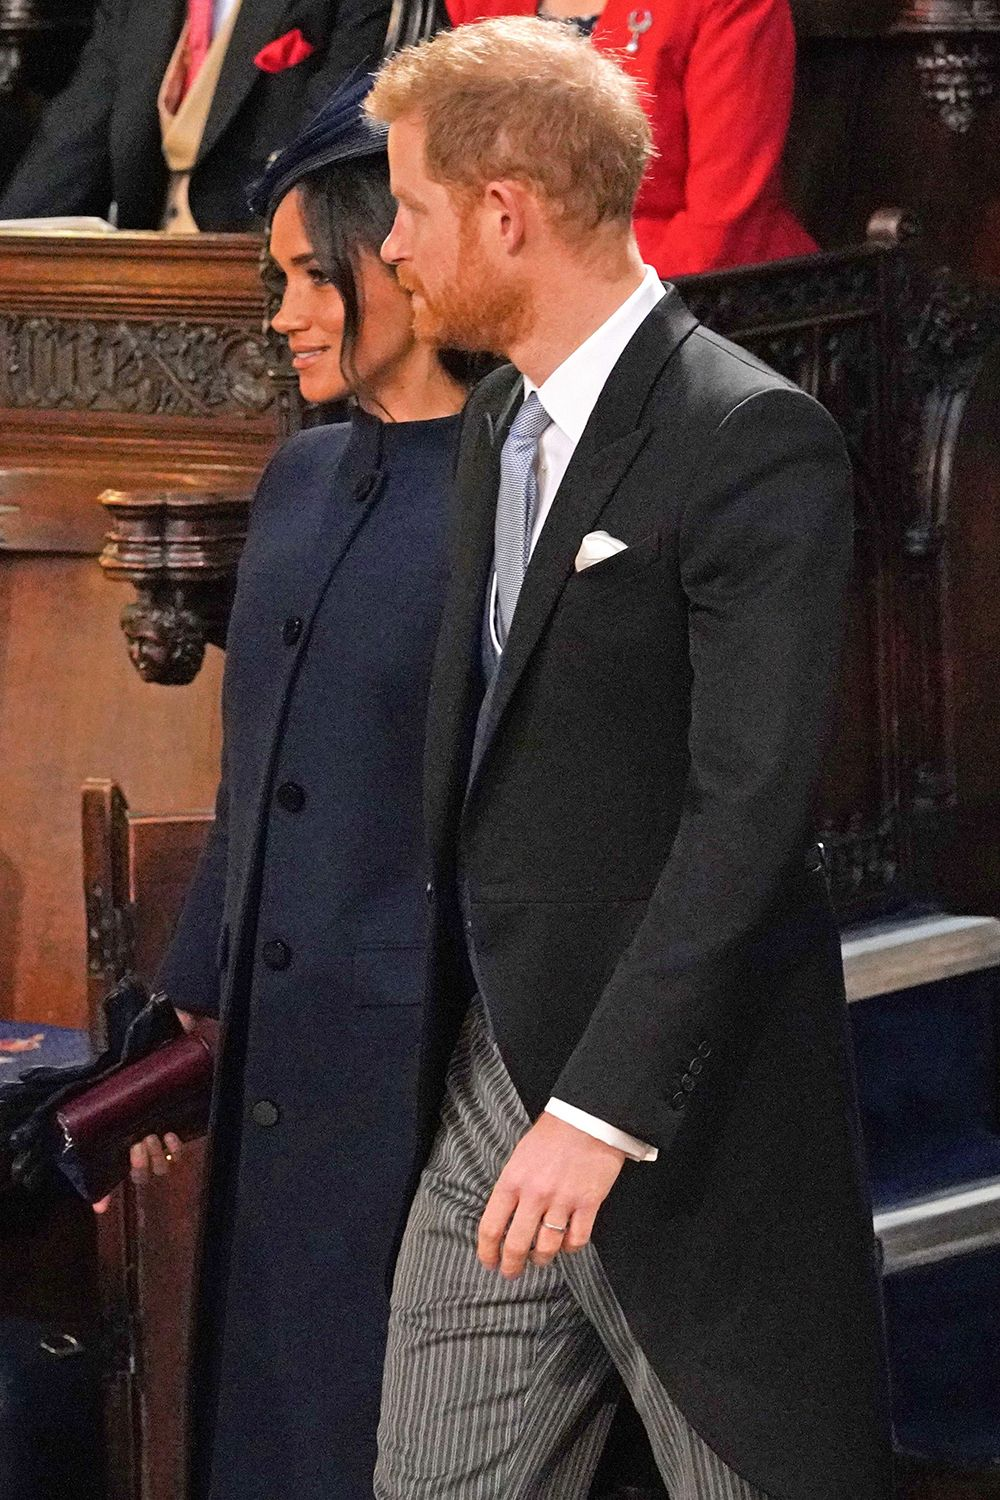 Meghan Just Took The Vb Route For Her Wedding Guest Outfit